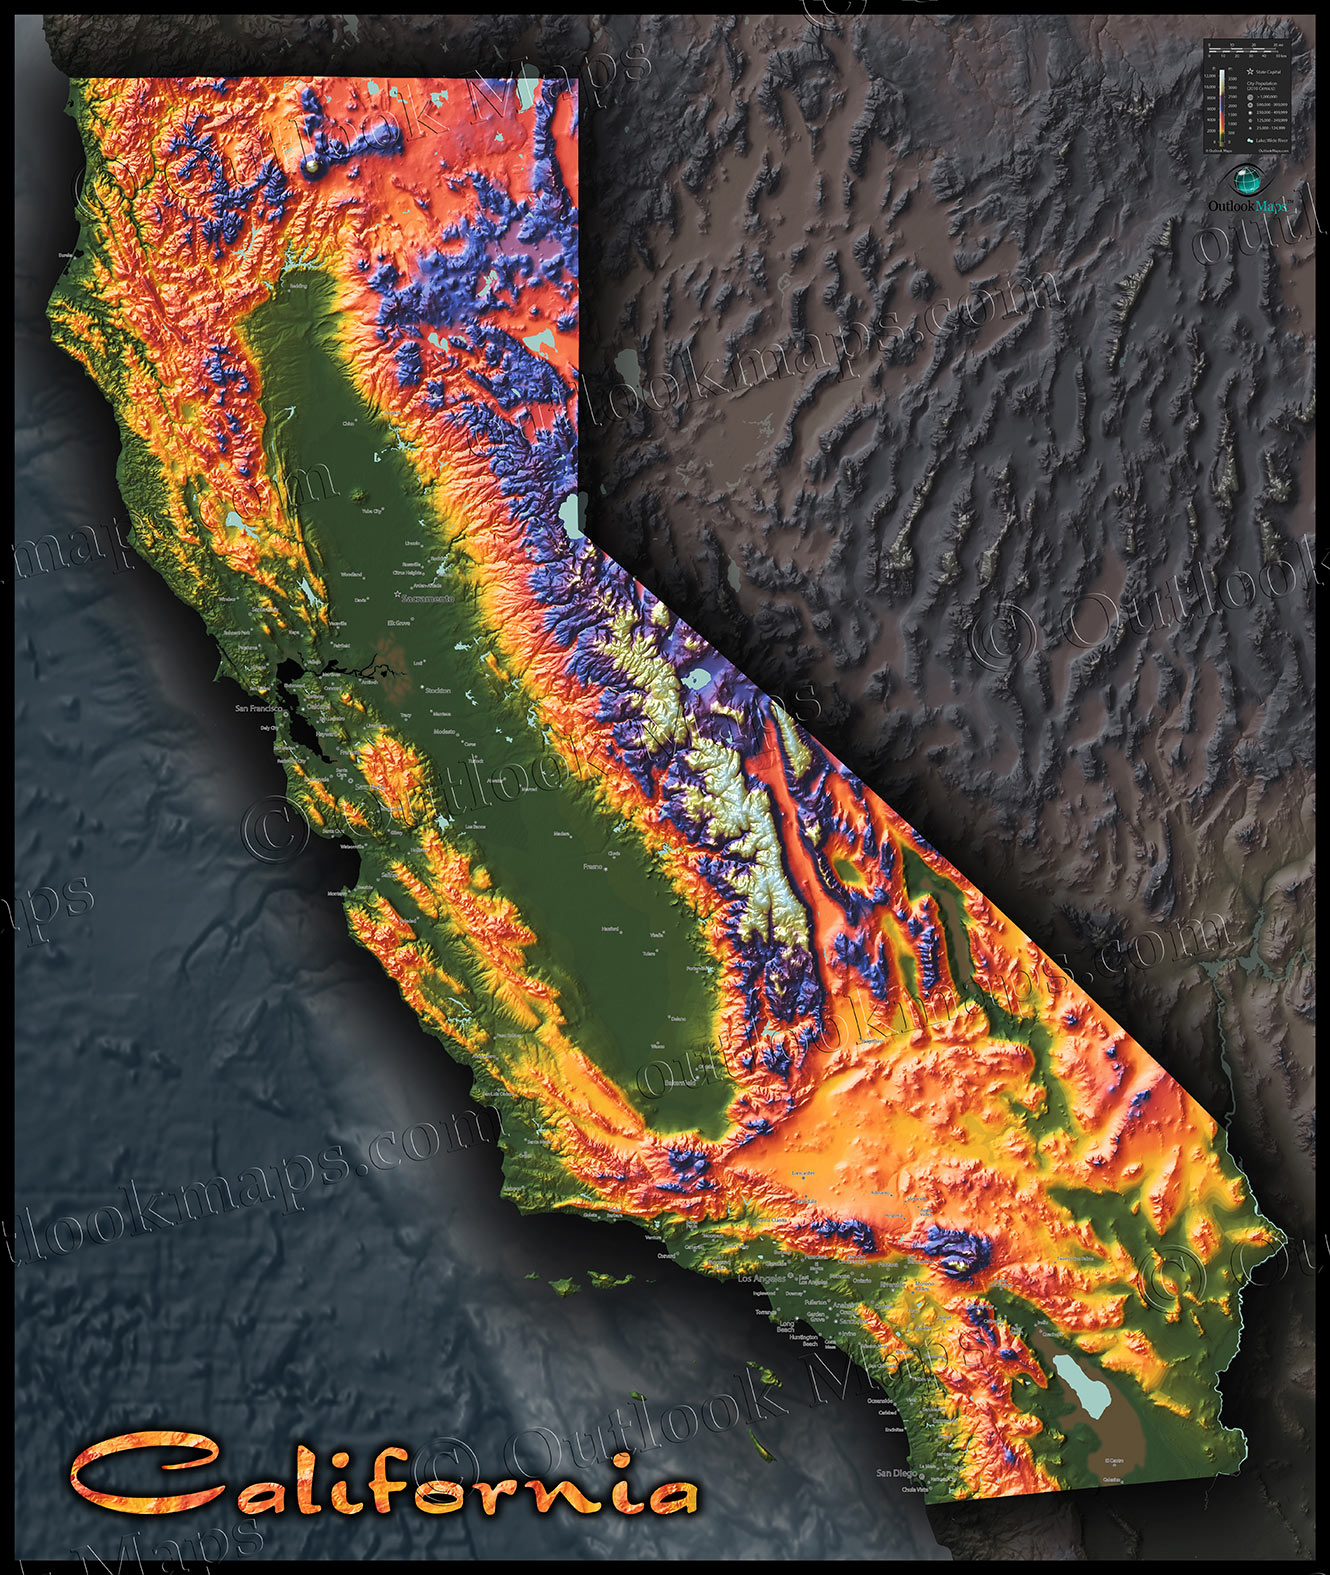 Colorful California Map | Topographical Physical Landscape